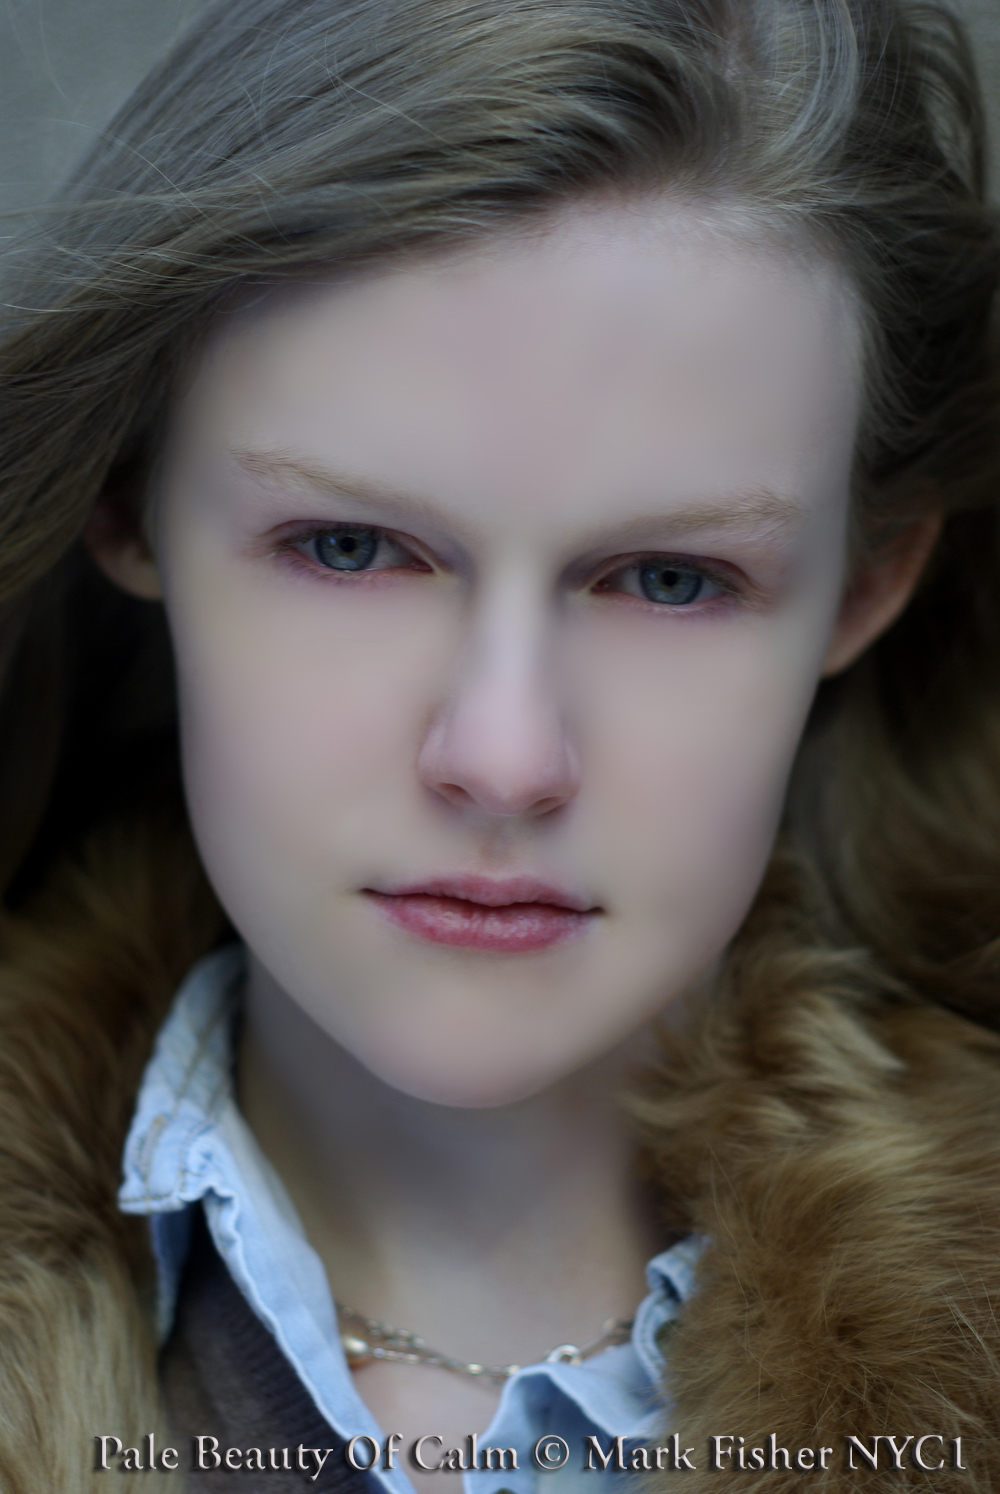 Pale Beauty Portrait Of Blond Woman Stock Image: Mark Fisher American Photographer™: Pale Calm Beauty